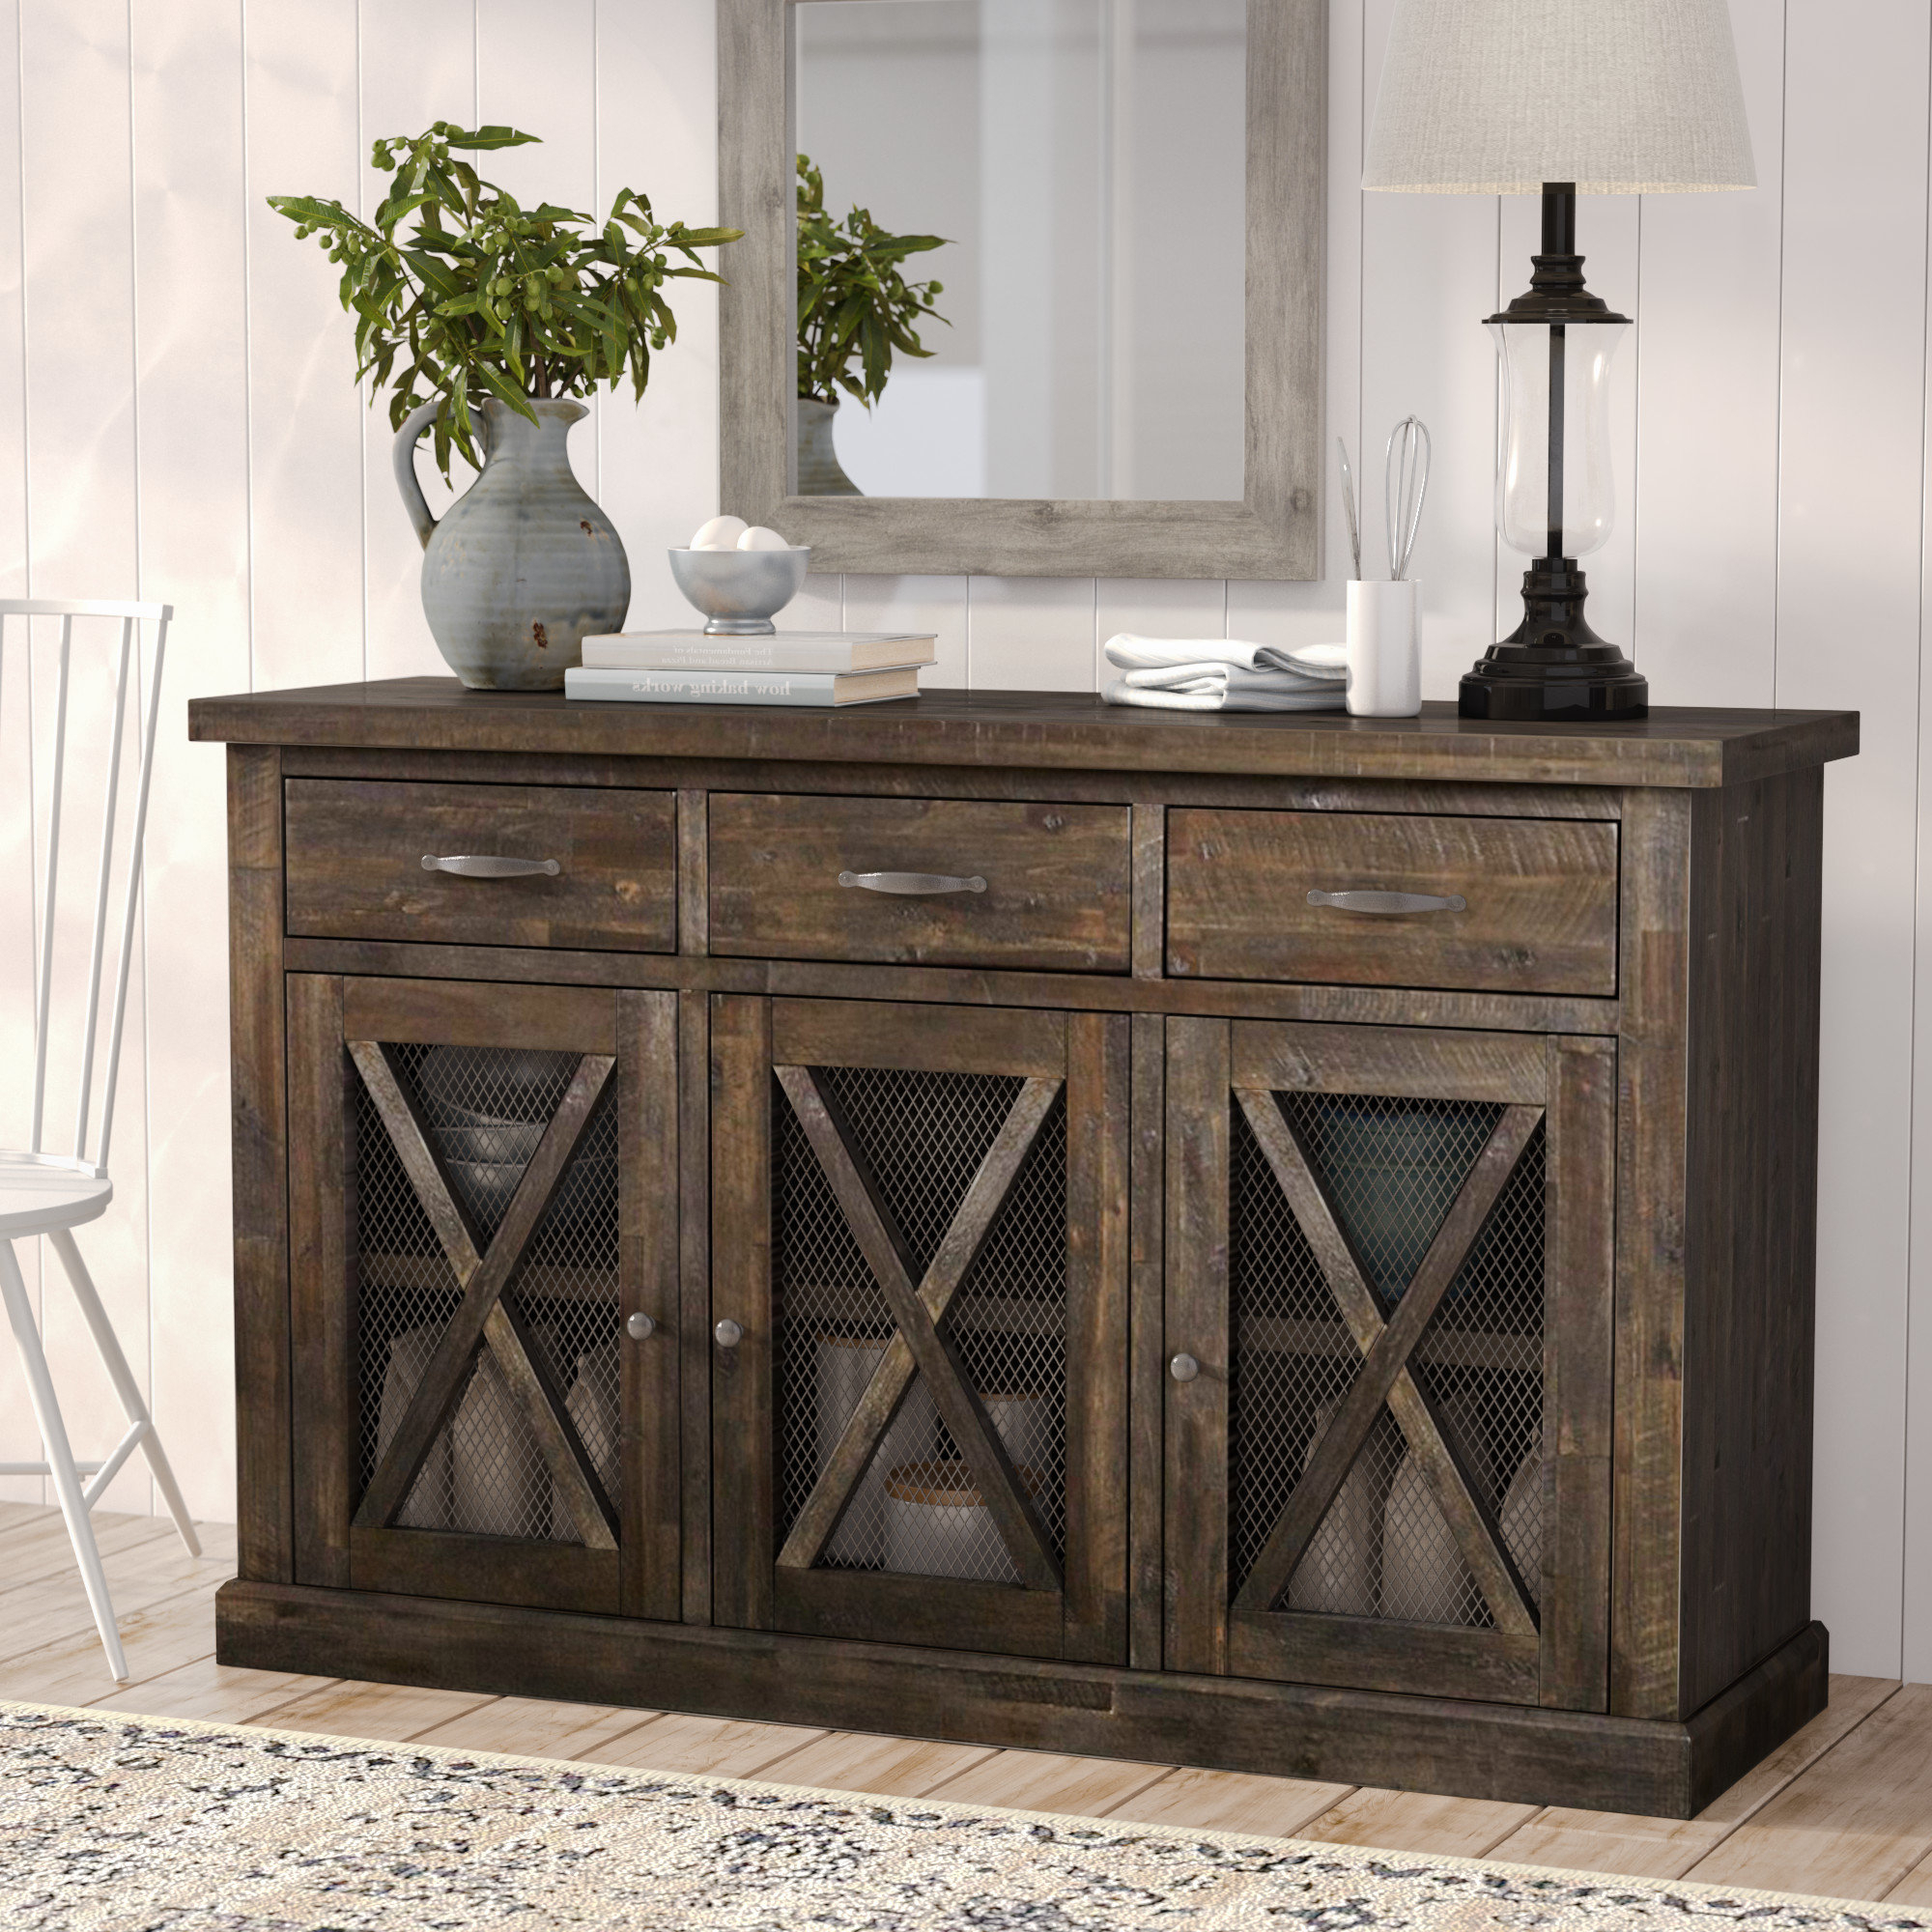 Laurel Foundry Modern Farmhouse Colborne Sideboard Regarding Tilman Sideboards (View 11 of 20)